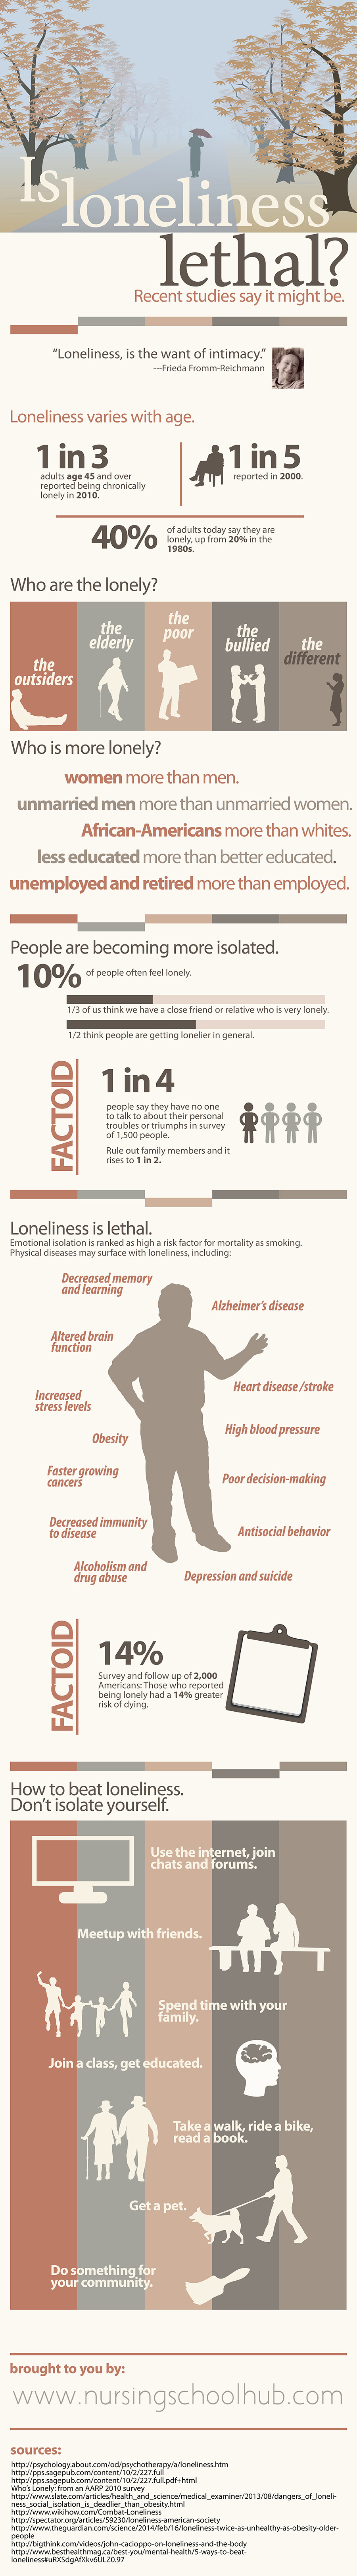 loneliness-lethal